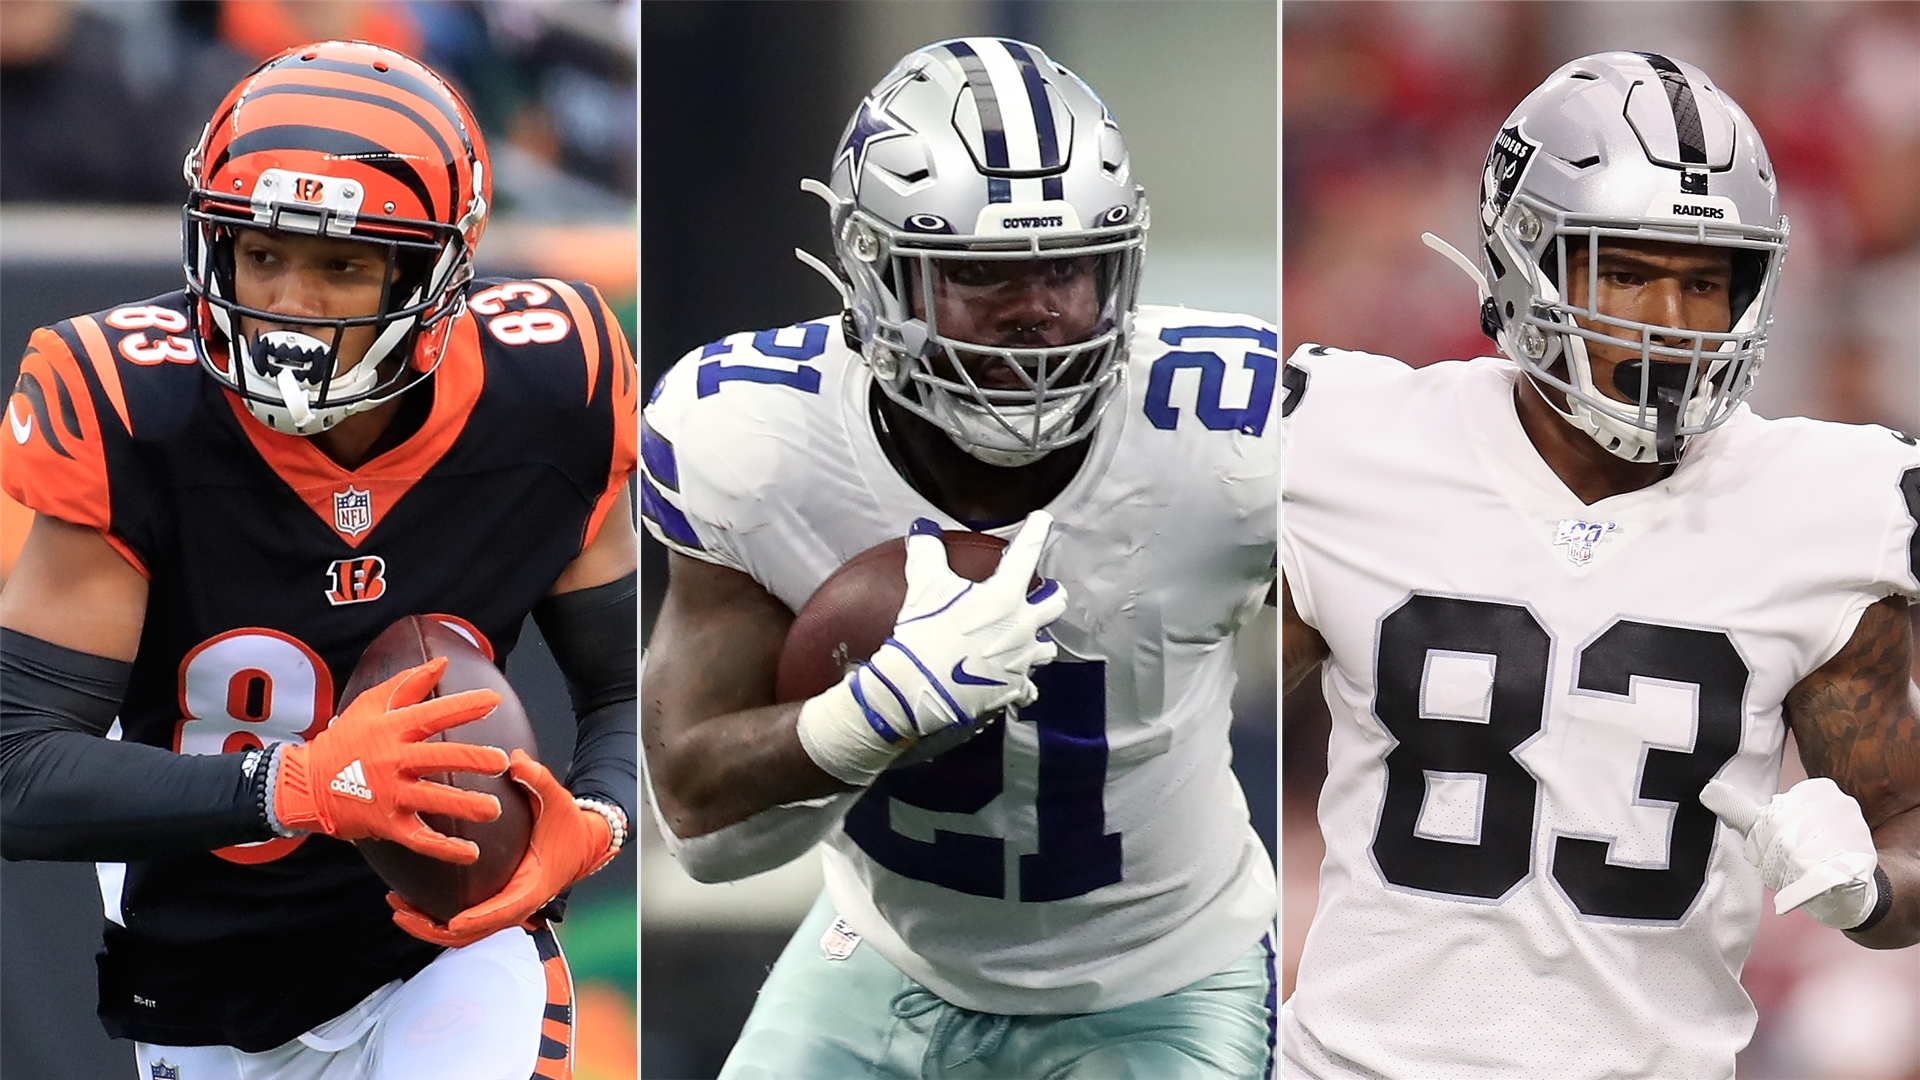 NFL Week 2 player props & fantasy football sleepers to target